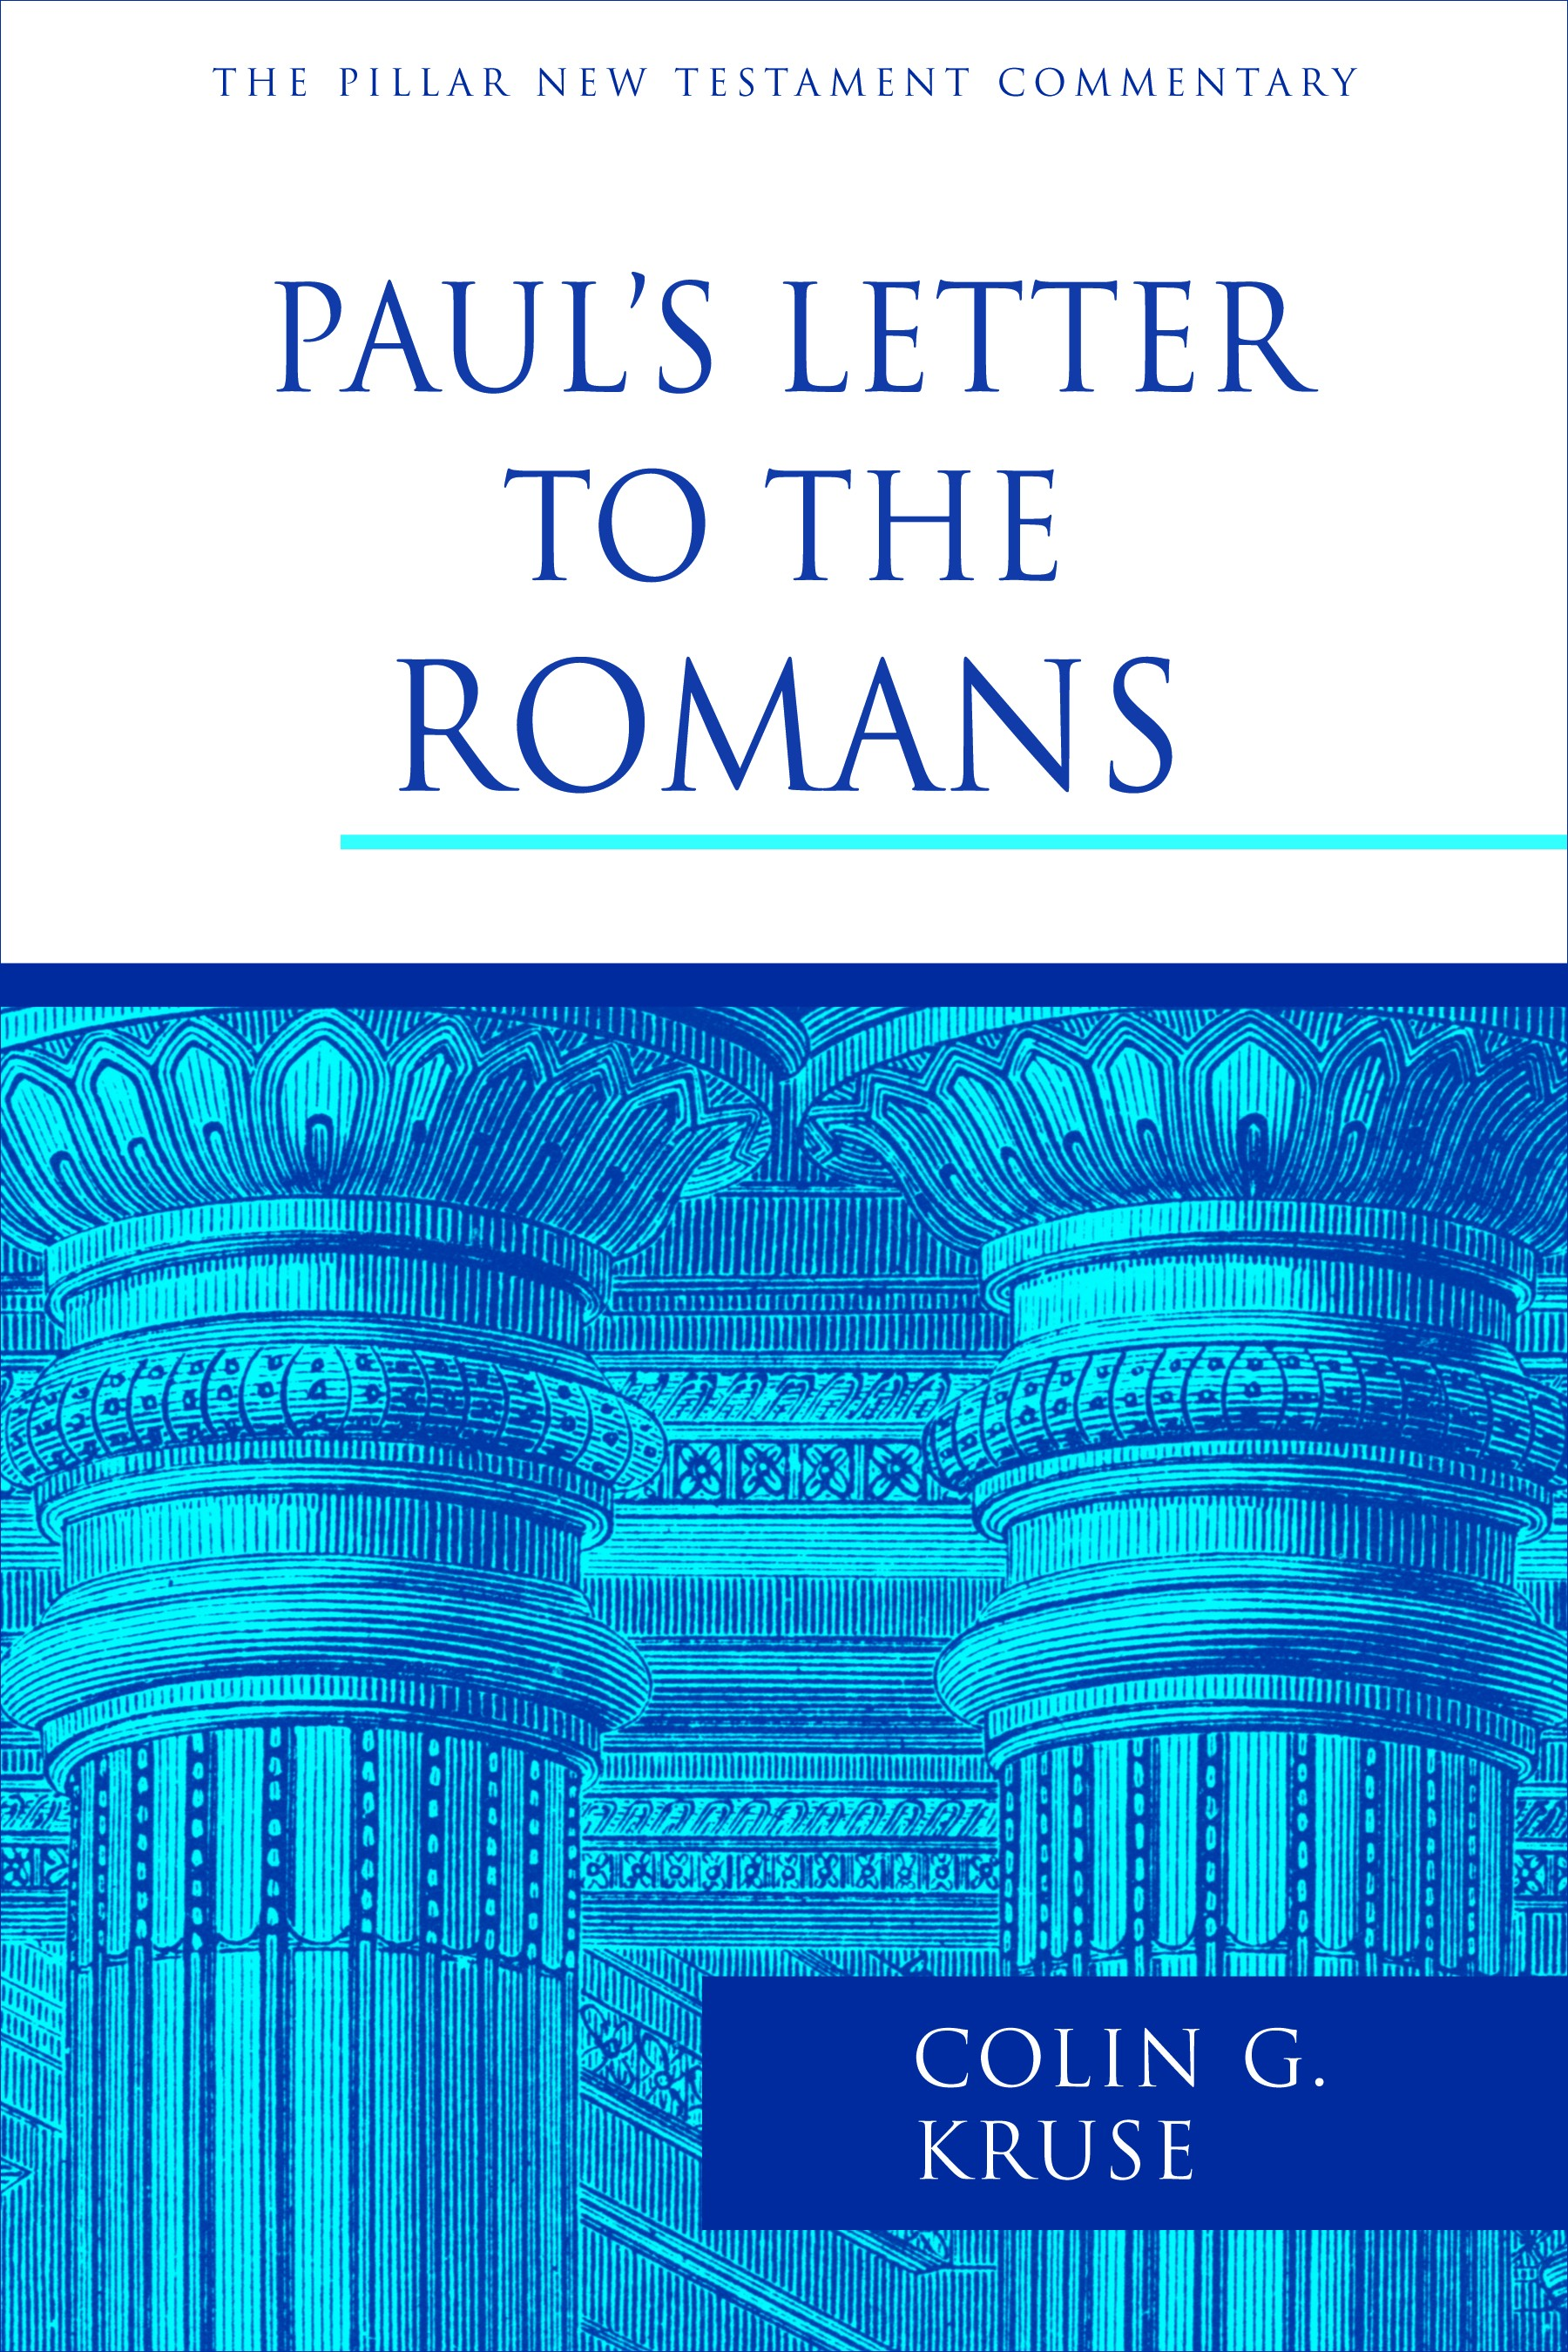 pauls letter to the romans colin g kruse eerdmans